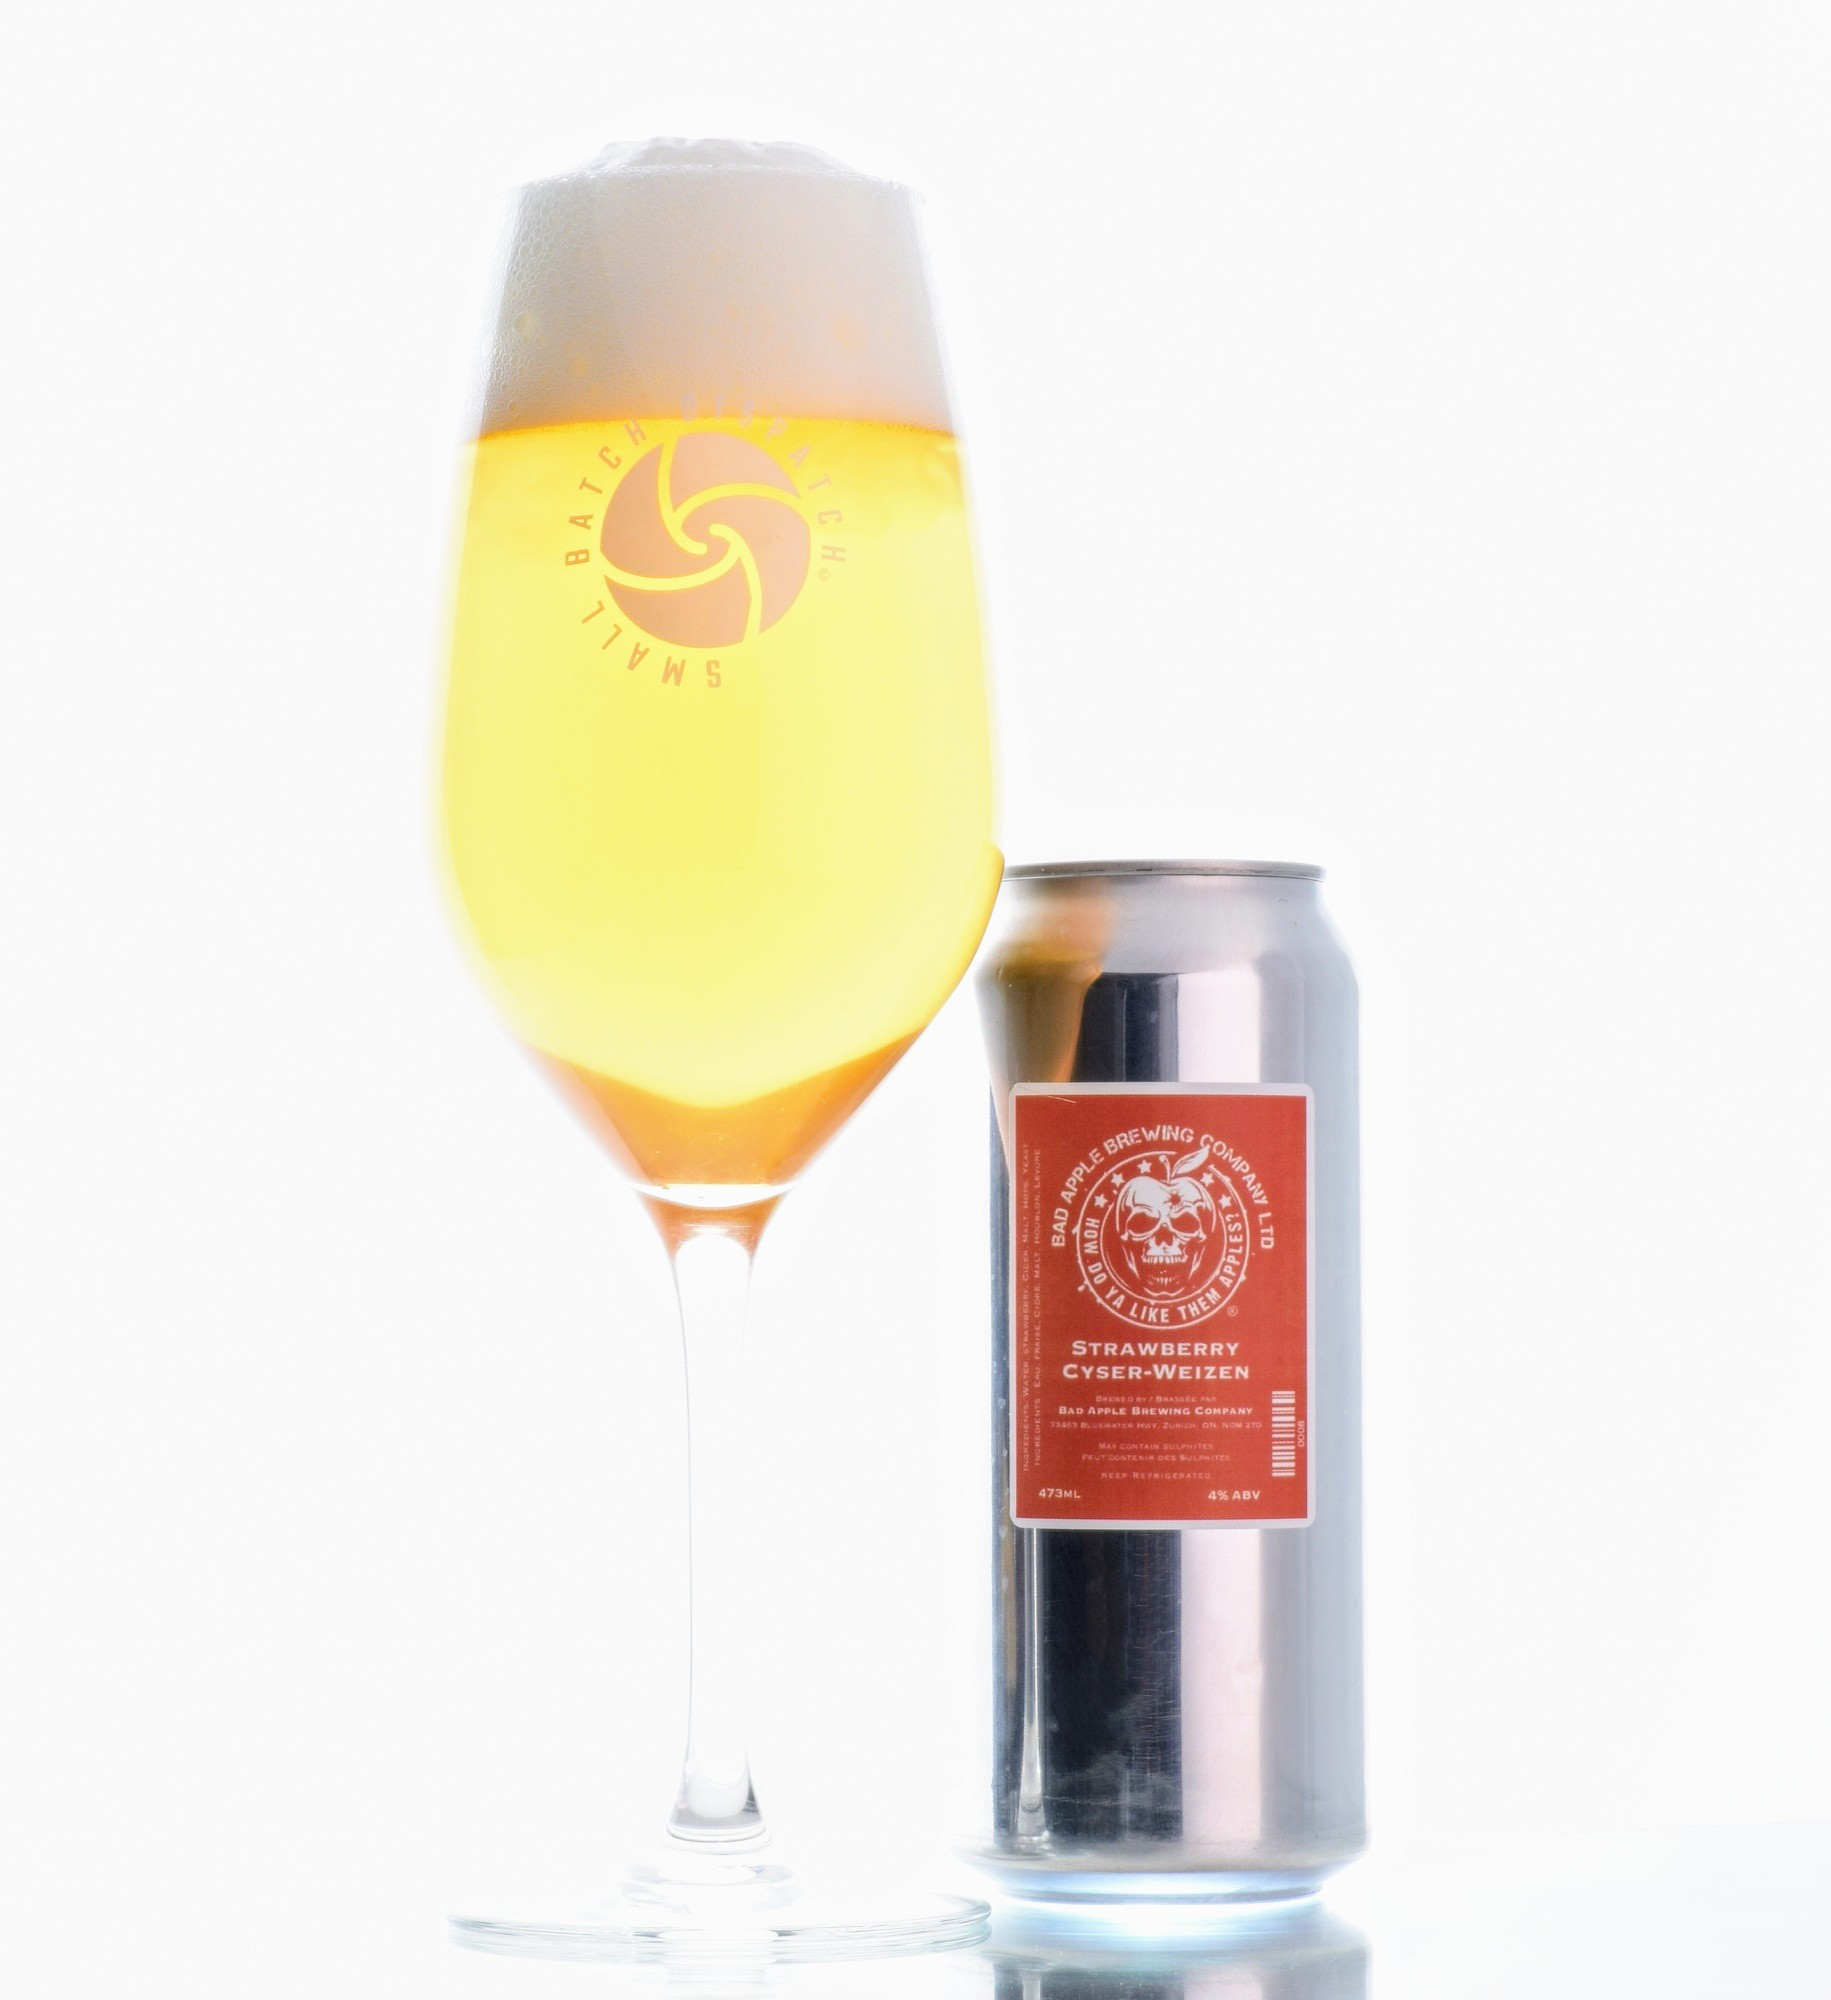 Strawberry Cyserweizen - Part of our April 2019 curation! This wheat beer is made with fresh strawberries.